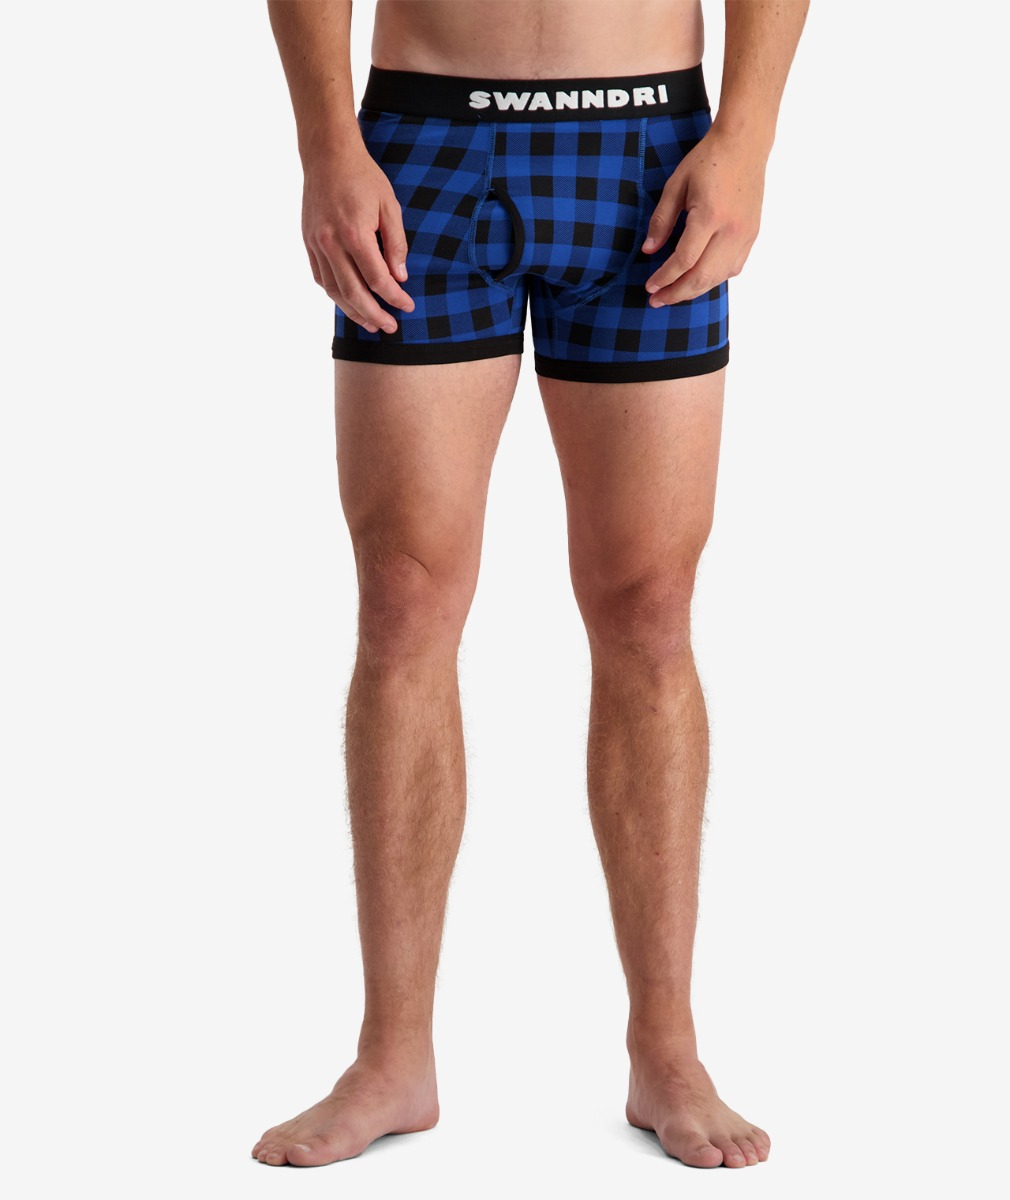 Swanndri Men's Cotton Undies